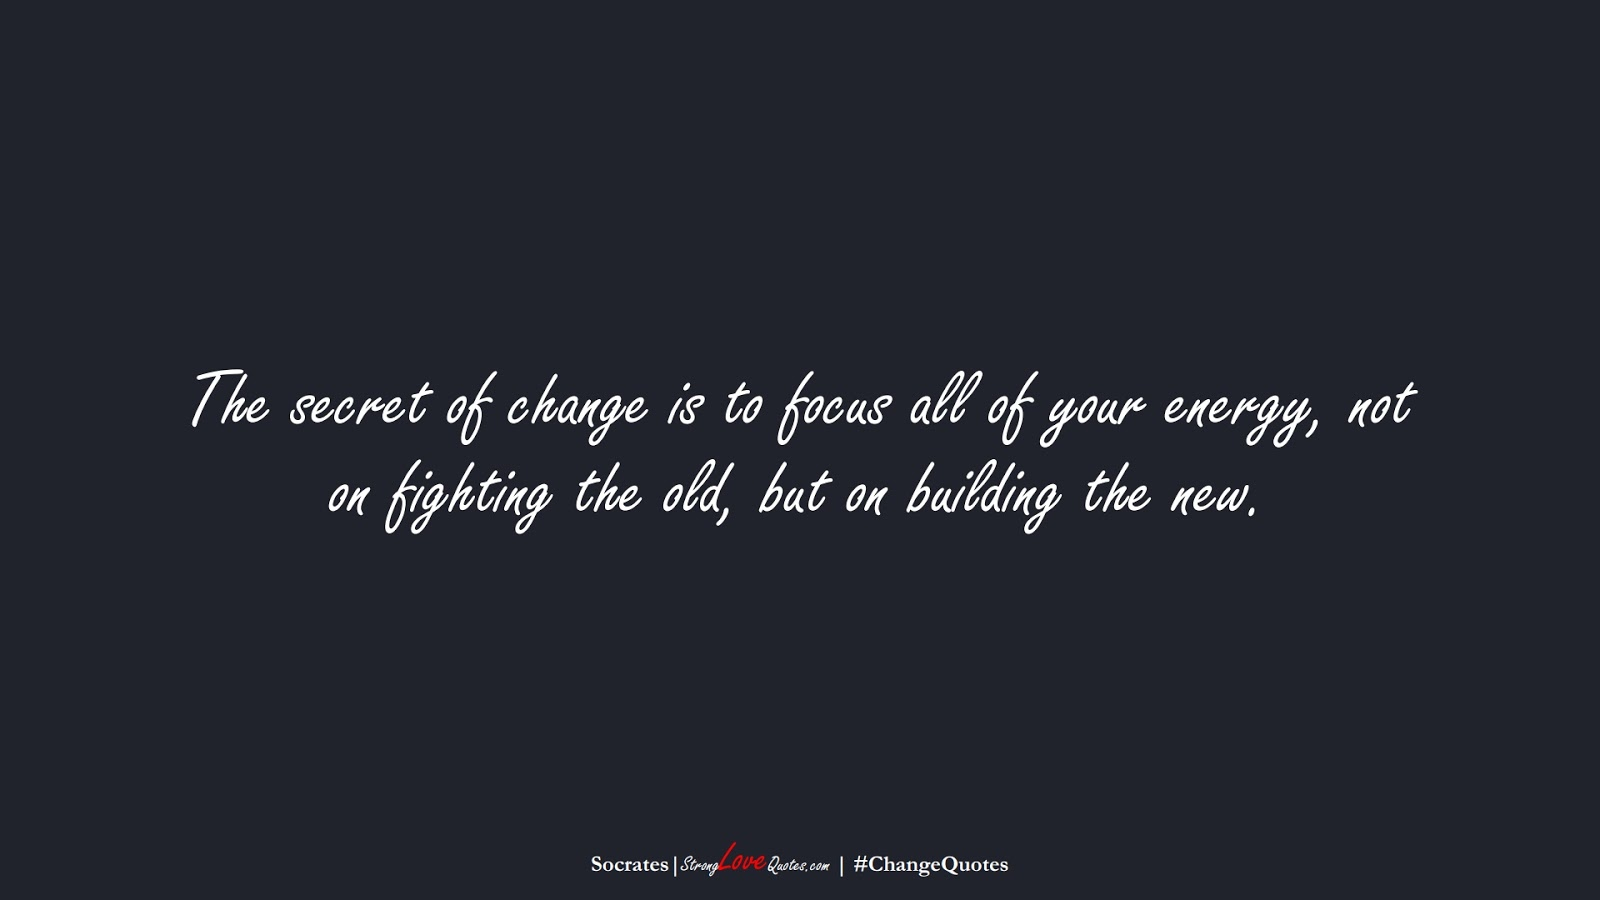 The secret of change is to focus all of your energy, not on fighting the old, but on building the new. (Socrates);  #ChangeQuotes